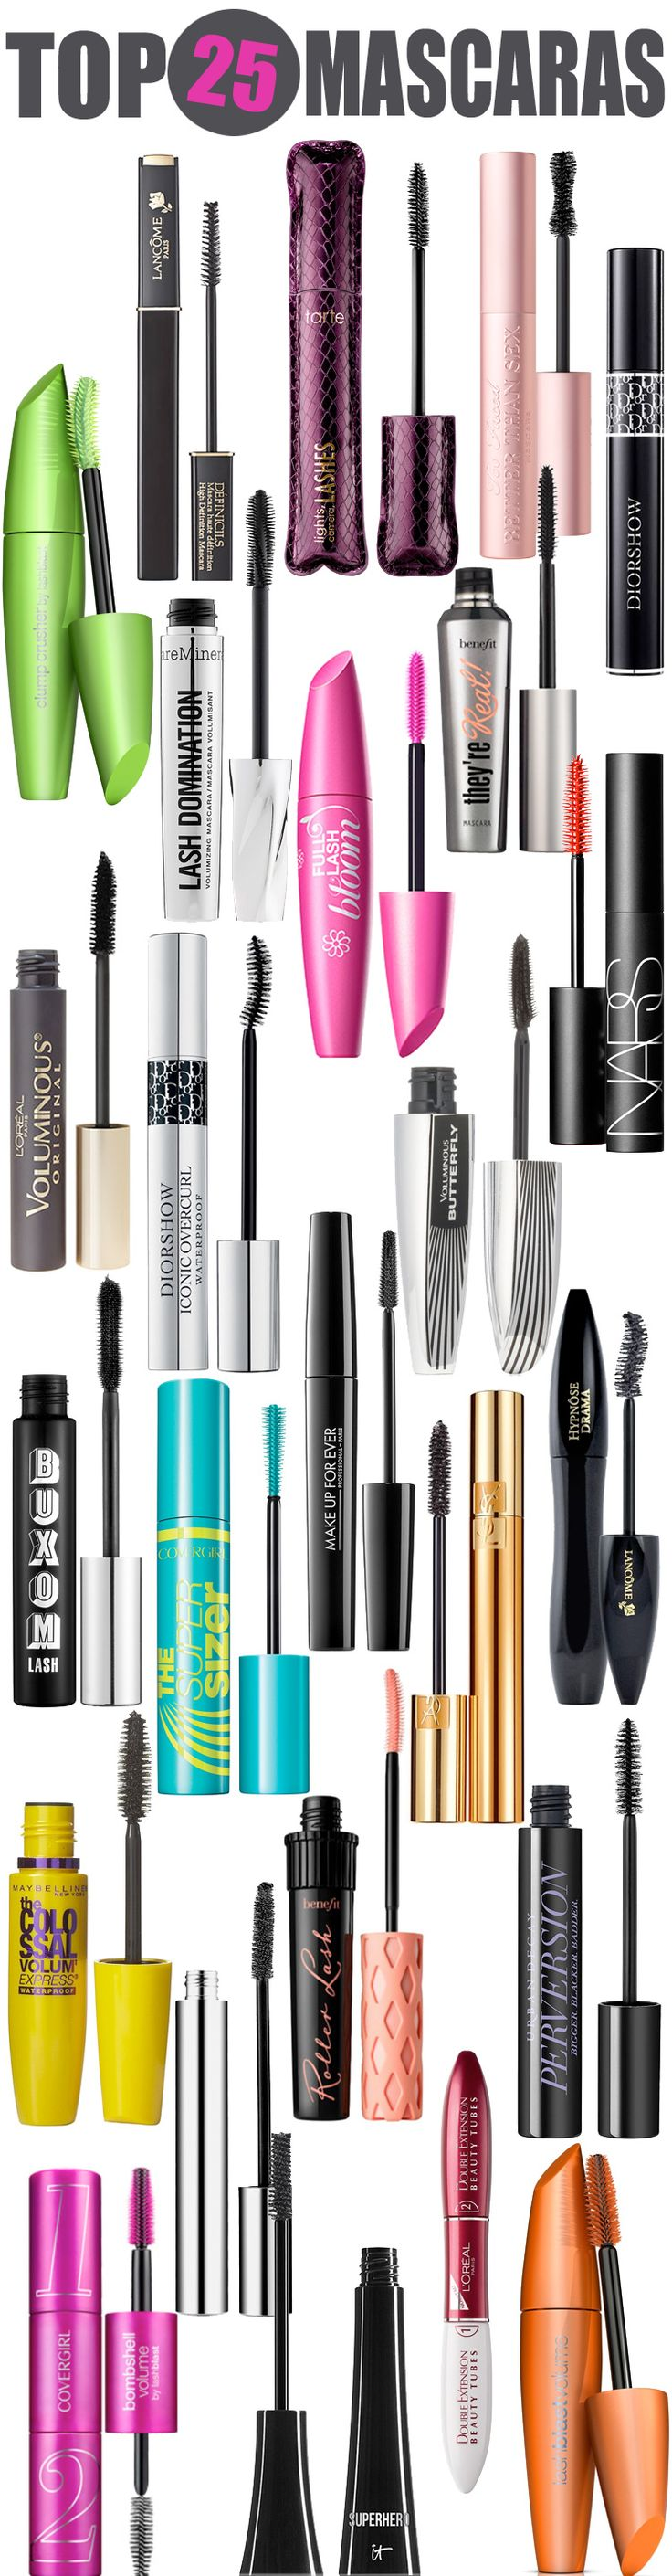 Top 25 Mascaras — From drugstore mascara to department store mascara, this lis...